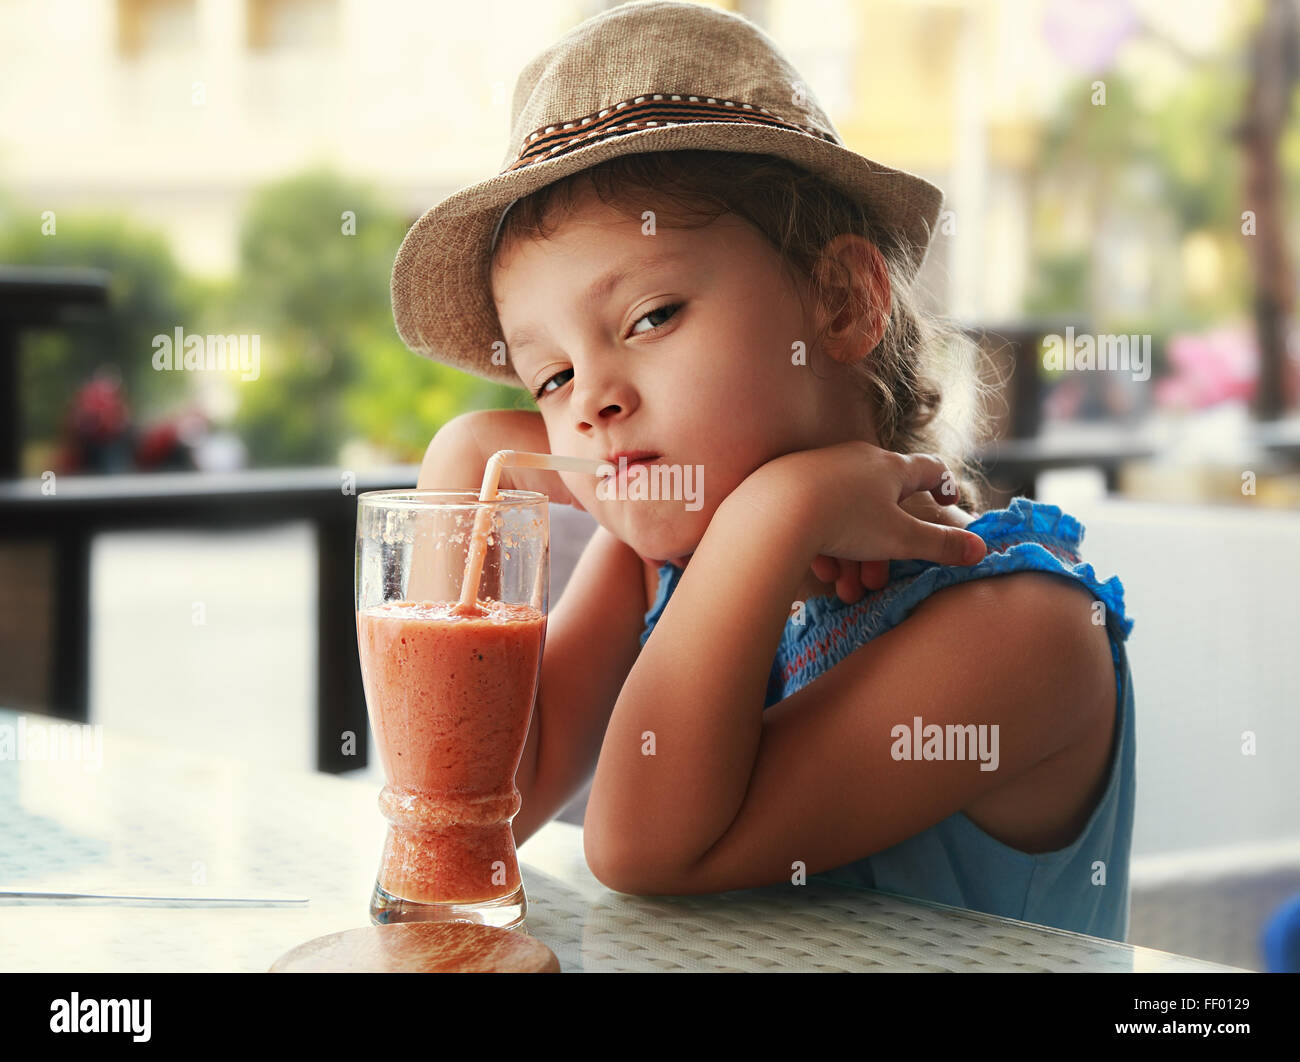 Grave intelligent kid girl drinking smoothie vitamine jus en café de la rue et à la recherche Photo Stock